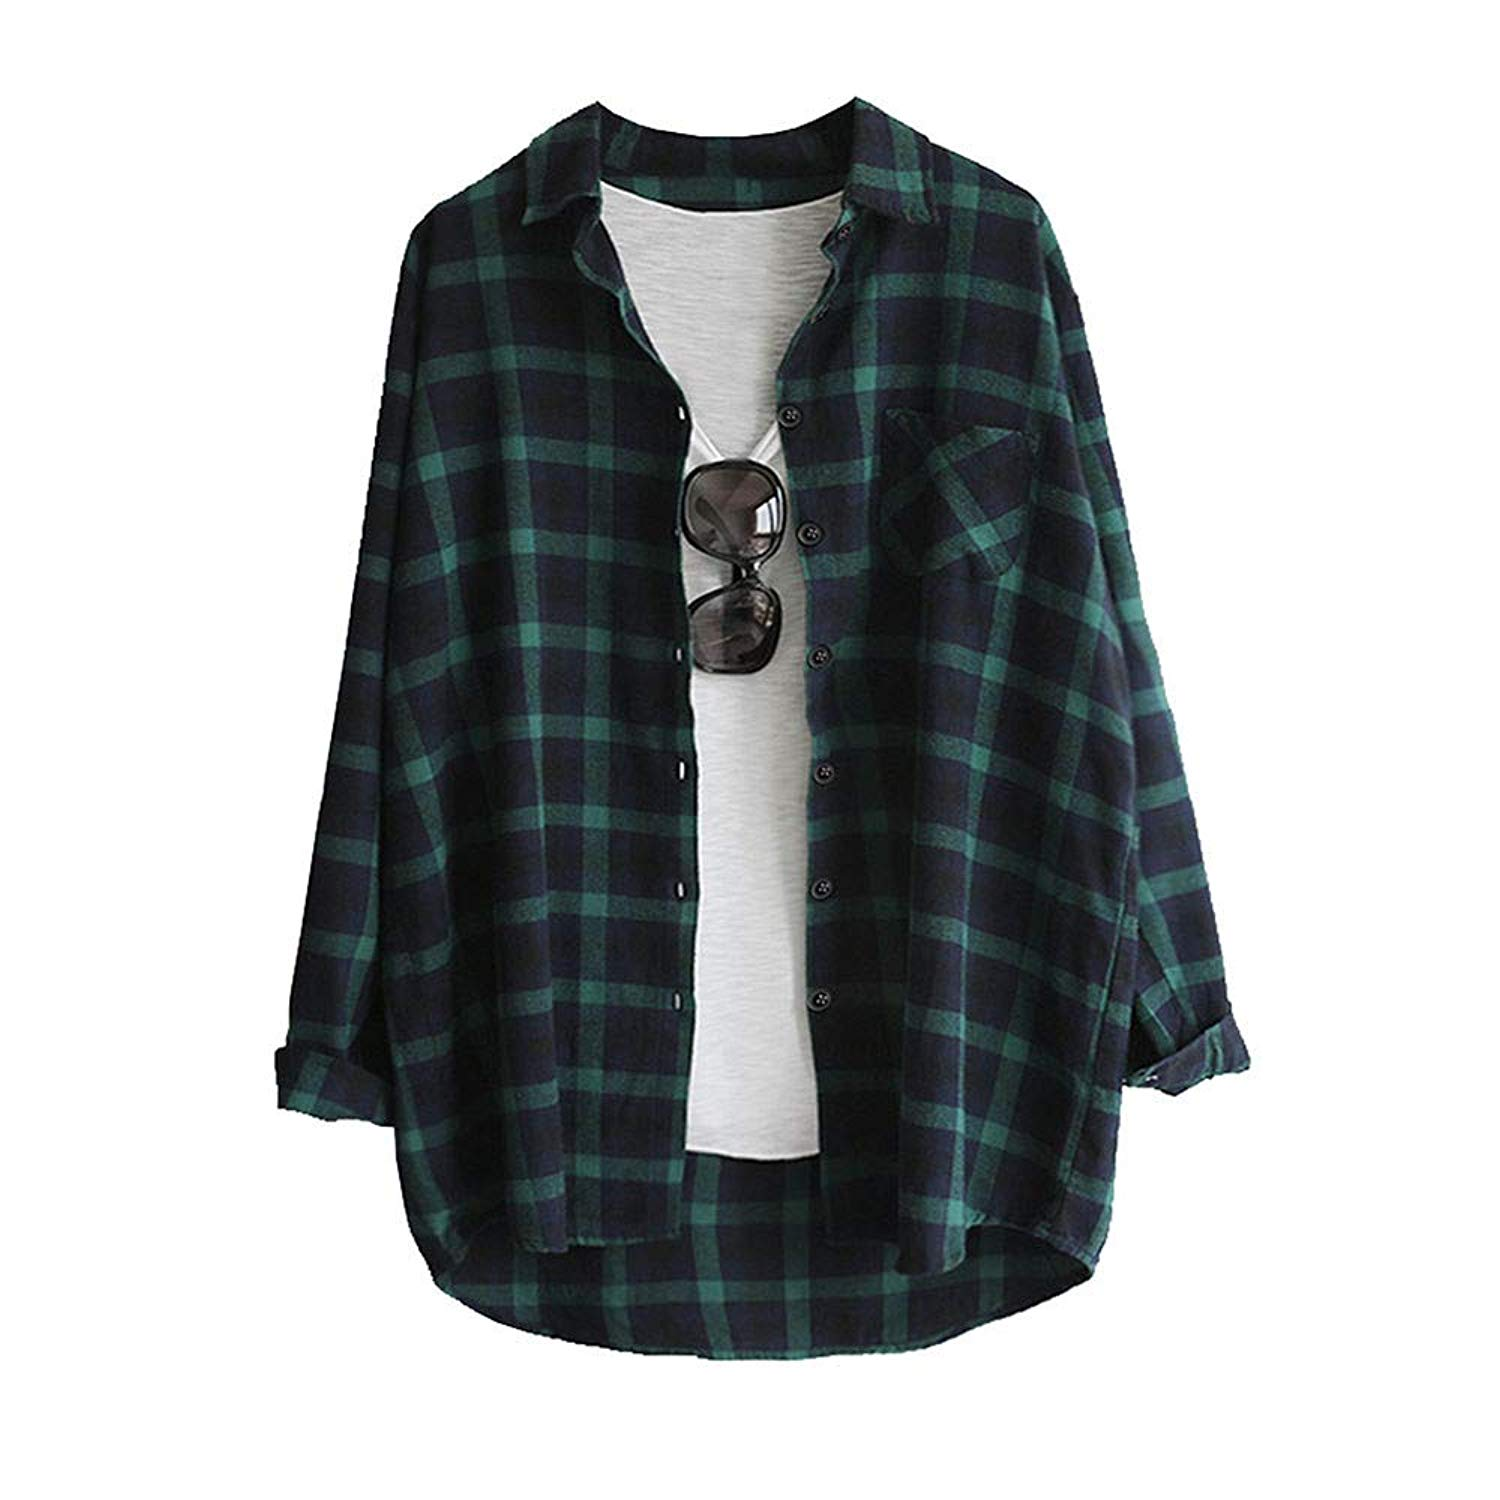 POTO Shirts, Women Long Sleeve Plaid Tunic Shirt,Casual Button Up Tops Blouse T-Shirt Sweatshirt Tee(S-2XL)